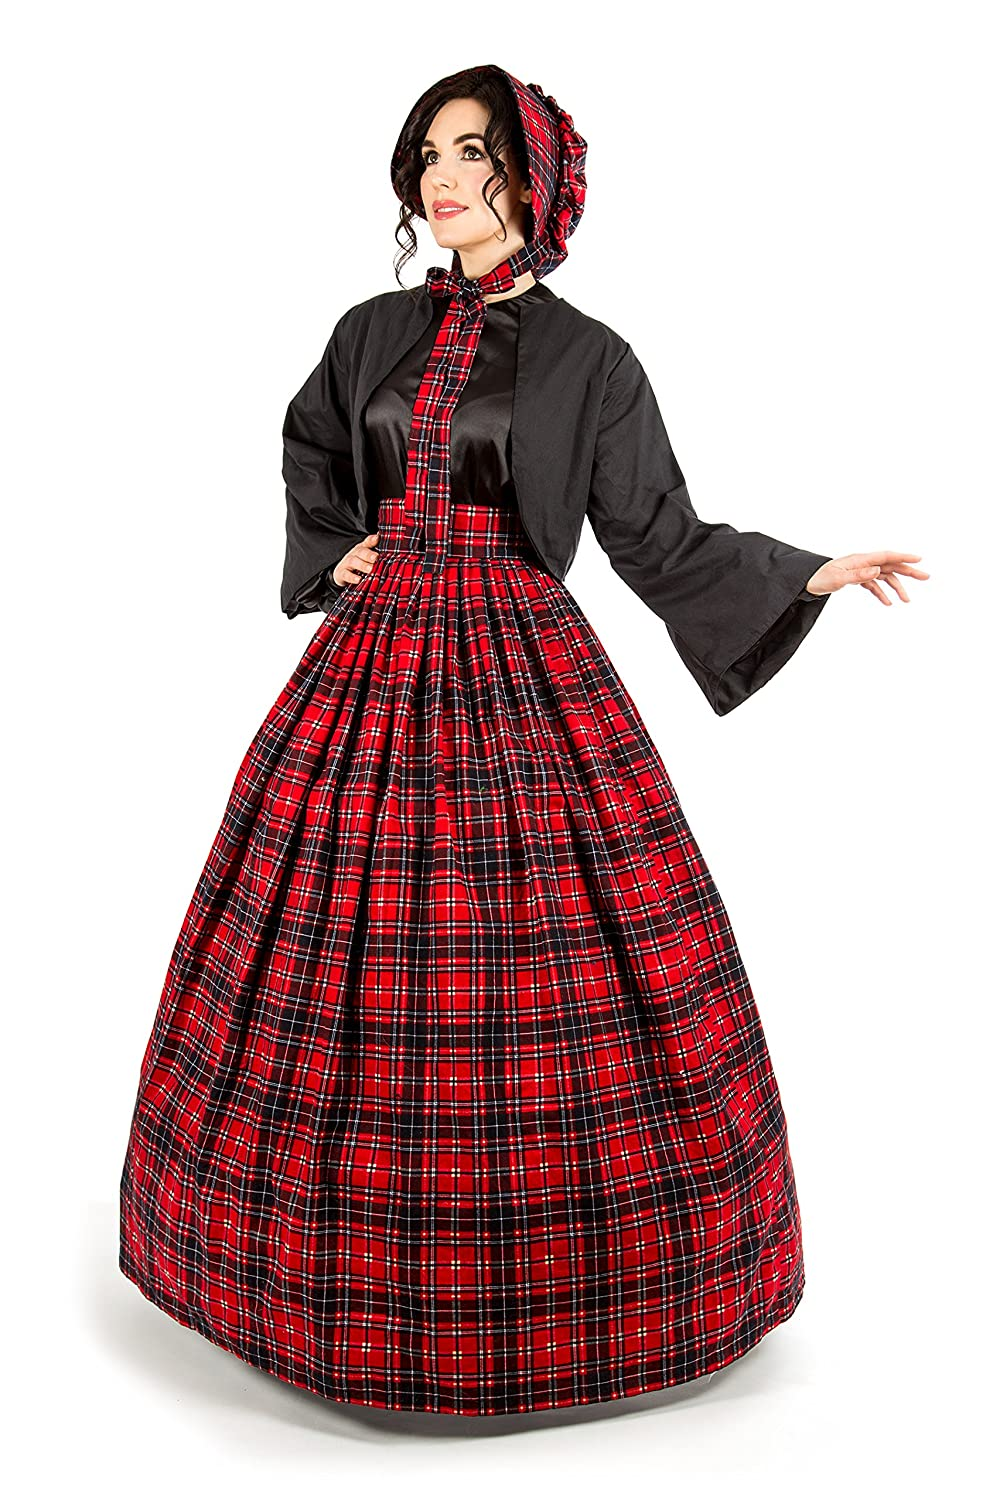 Reminisce Scottish Tartan Plaid Skirt and Jacket Set